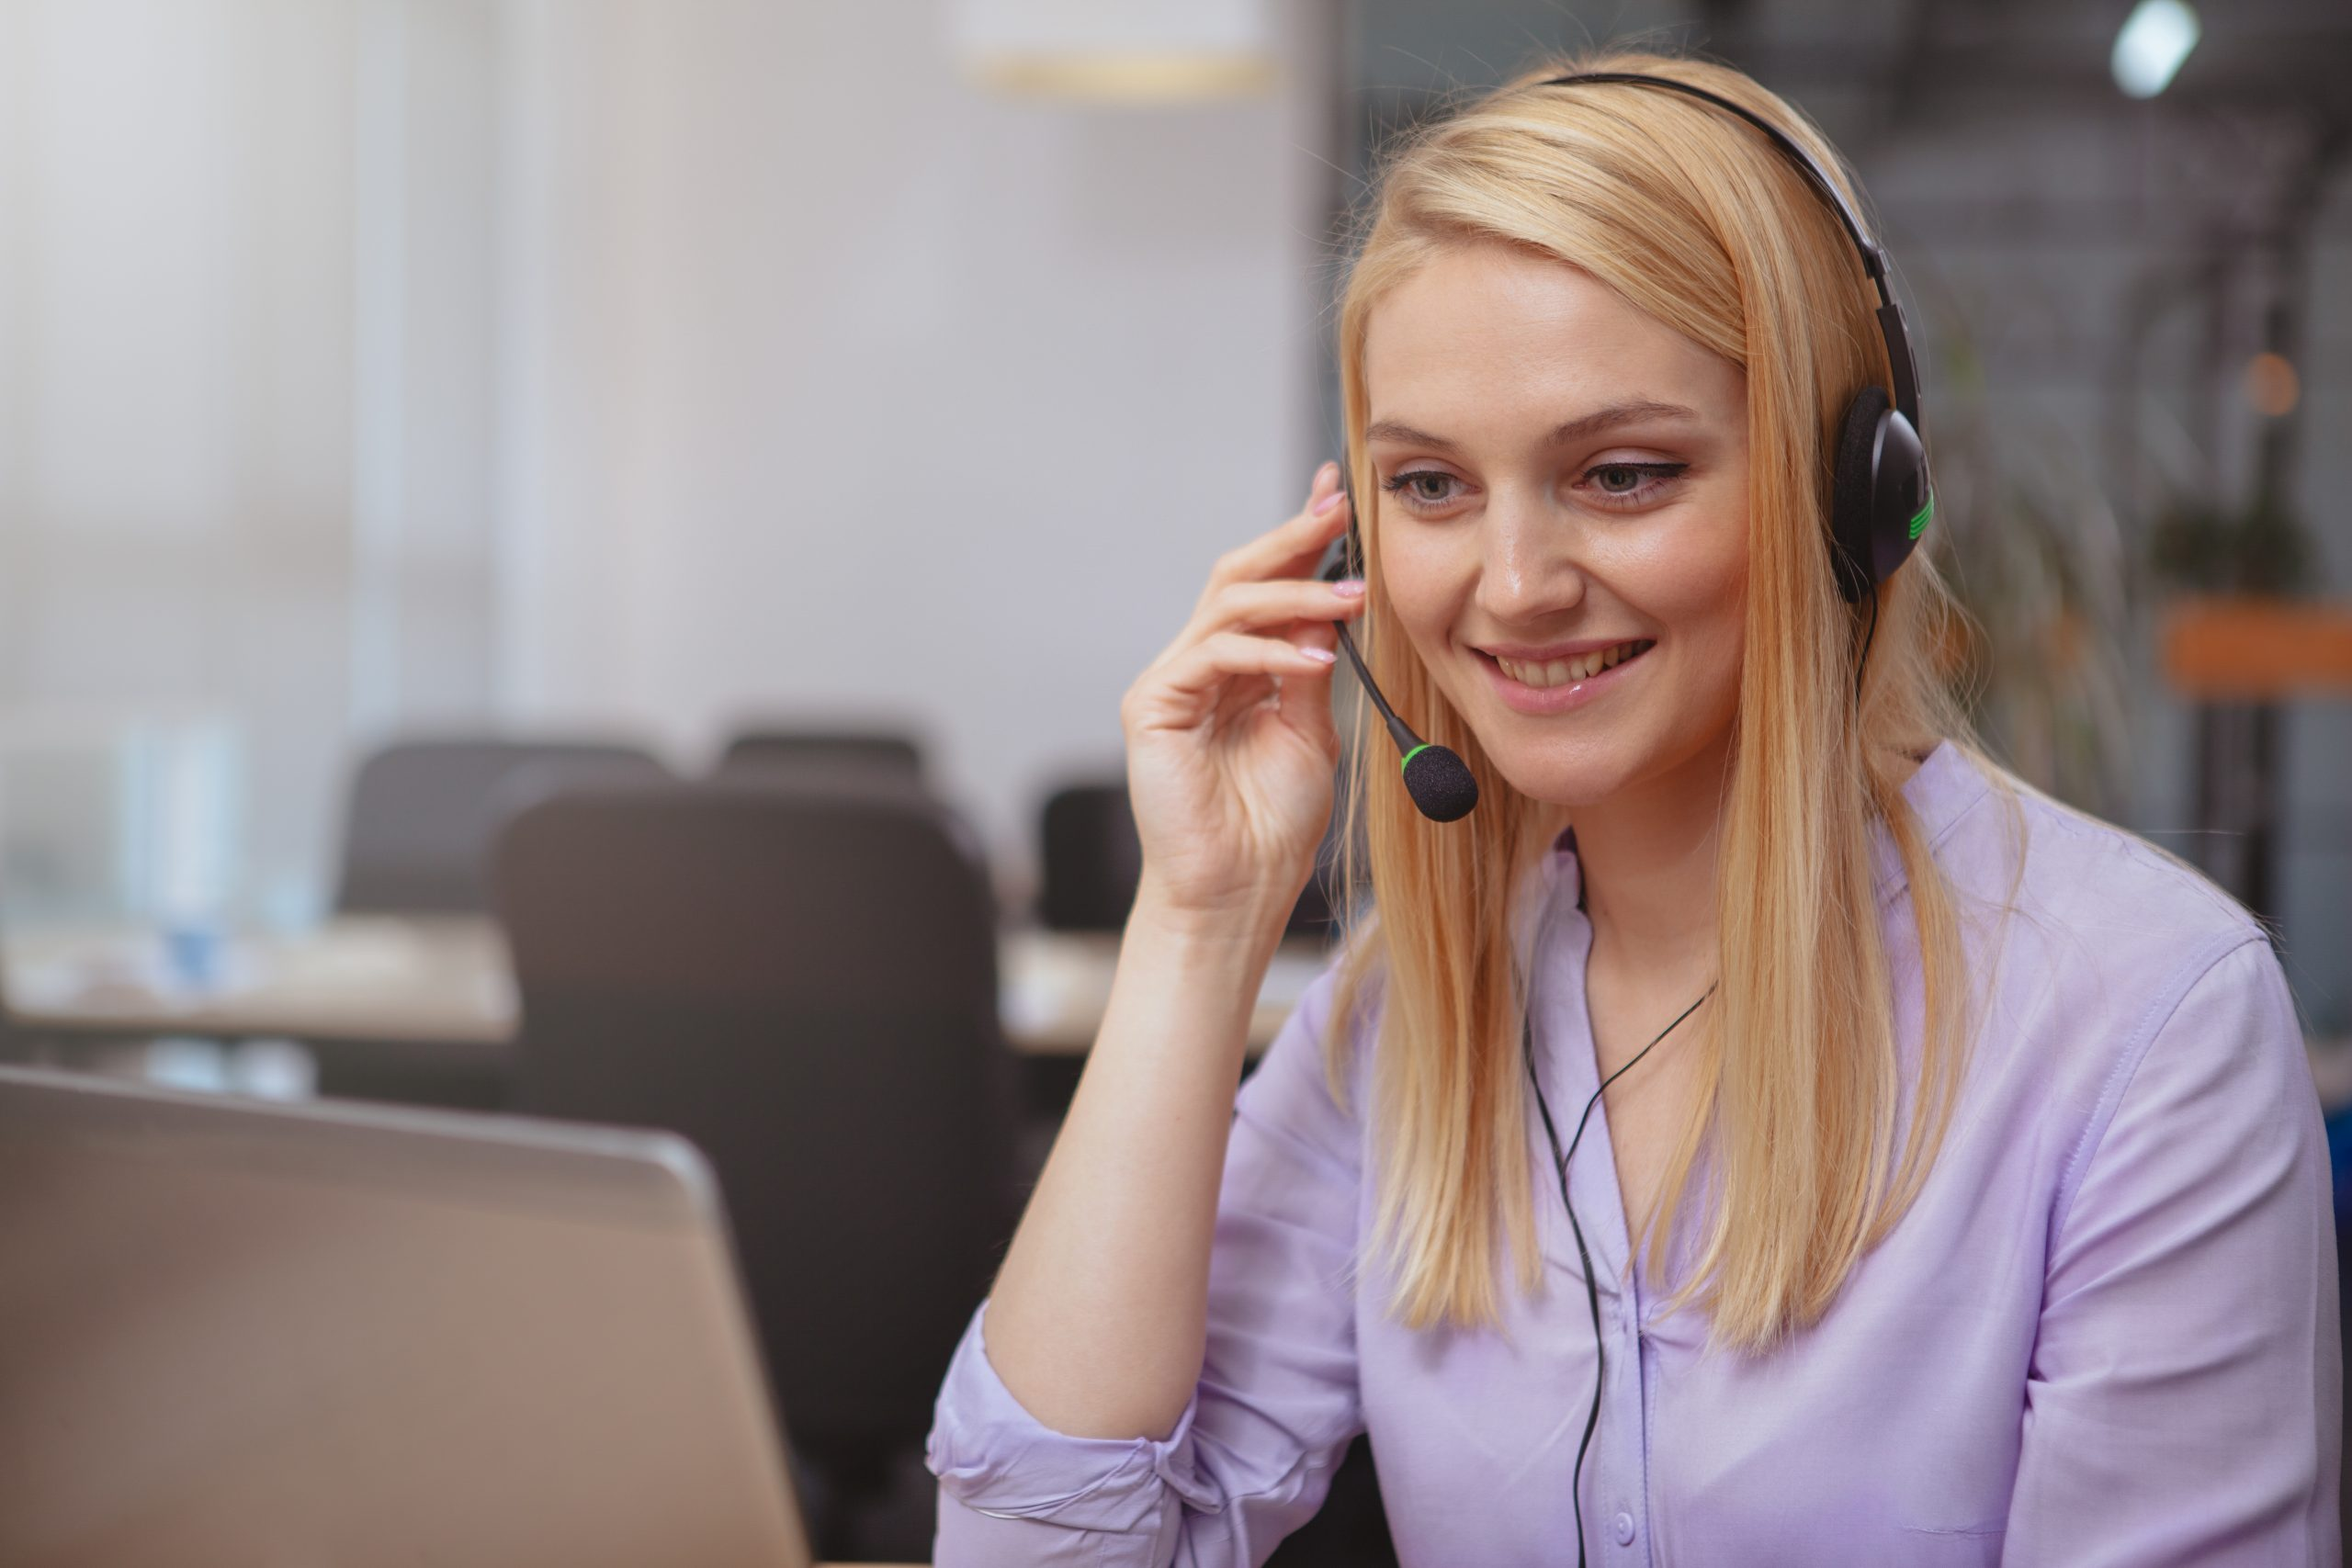 Beautiful cheerful woman smiling joyfully, answering customer calls at the call center, typing on her laptop. Lovely female customer support operator talking with callers, wearing headset